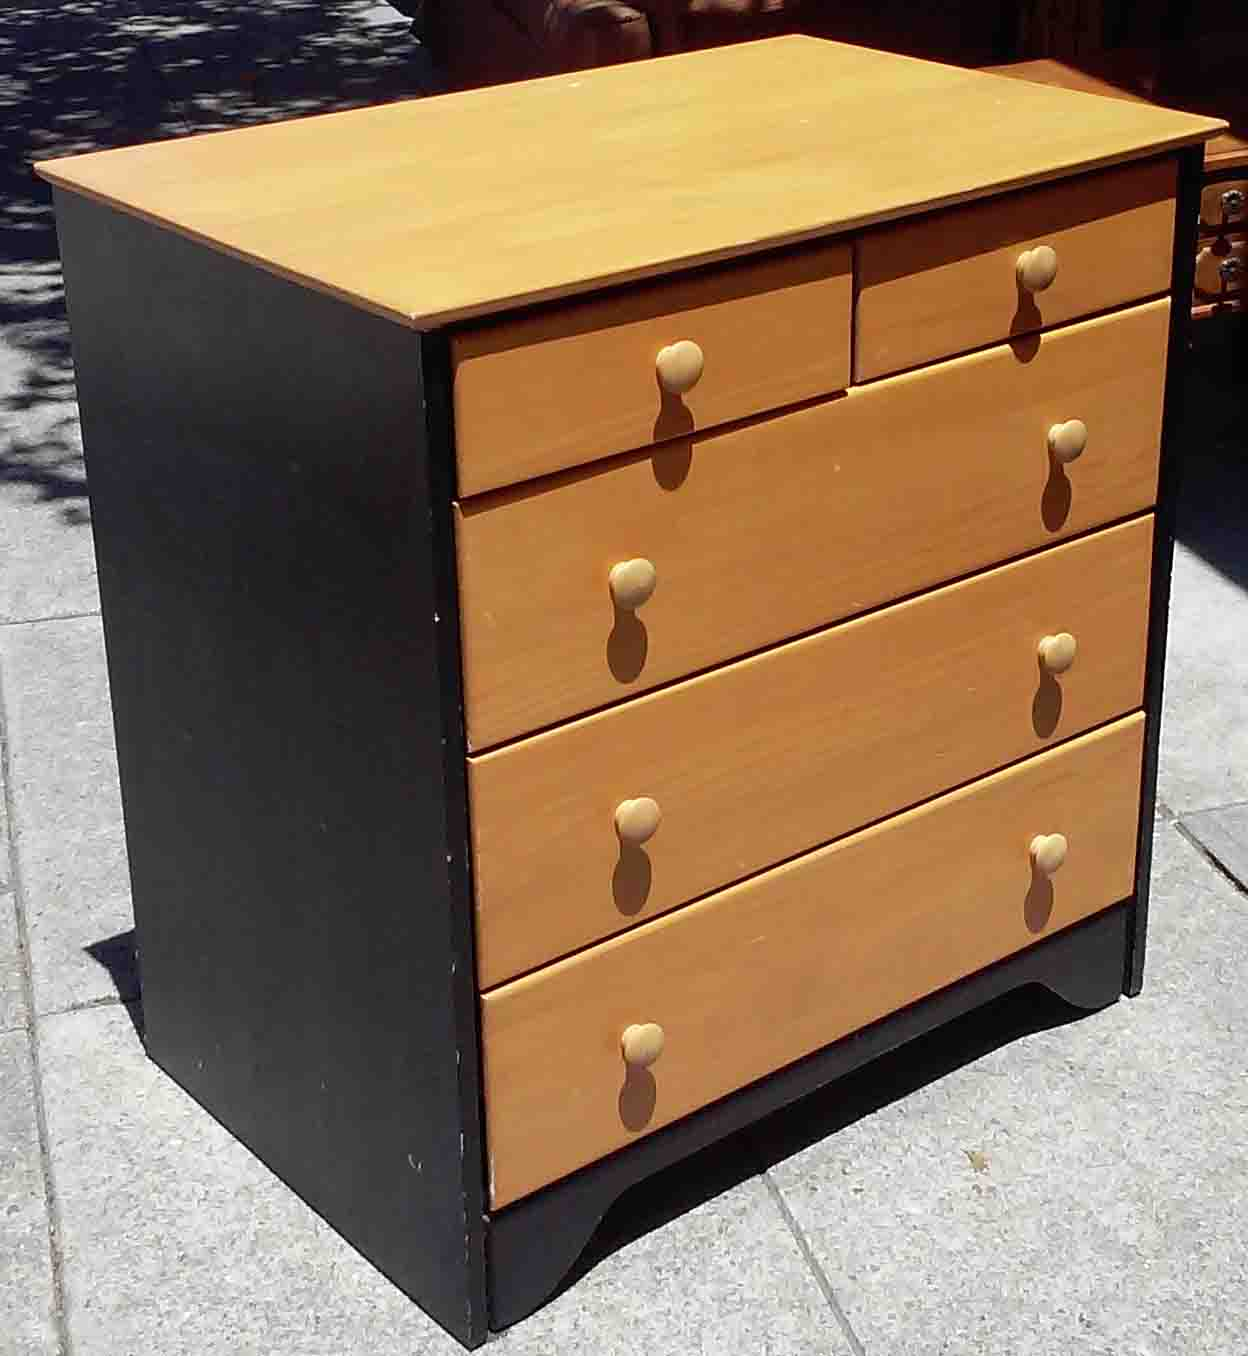 Sold Fenton Maclaren Chest Of Drawers 100